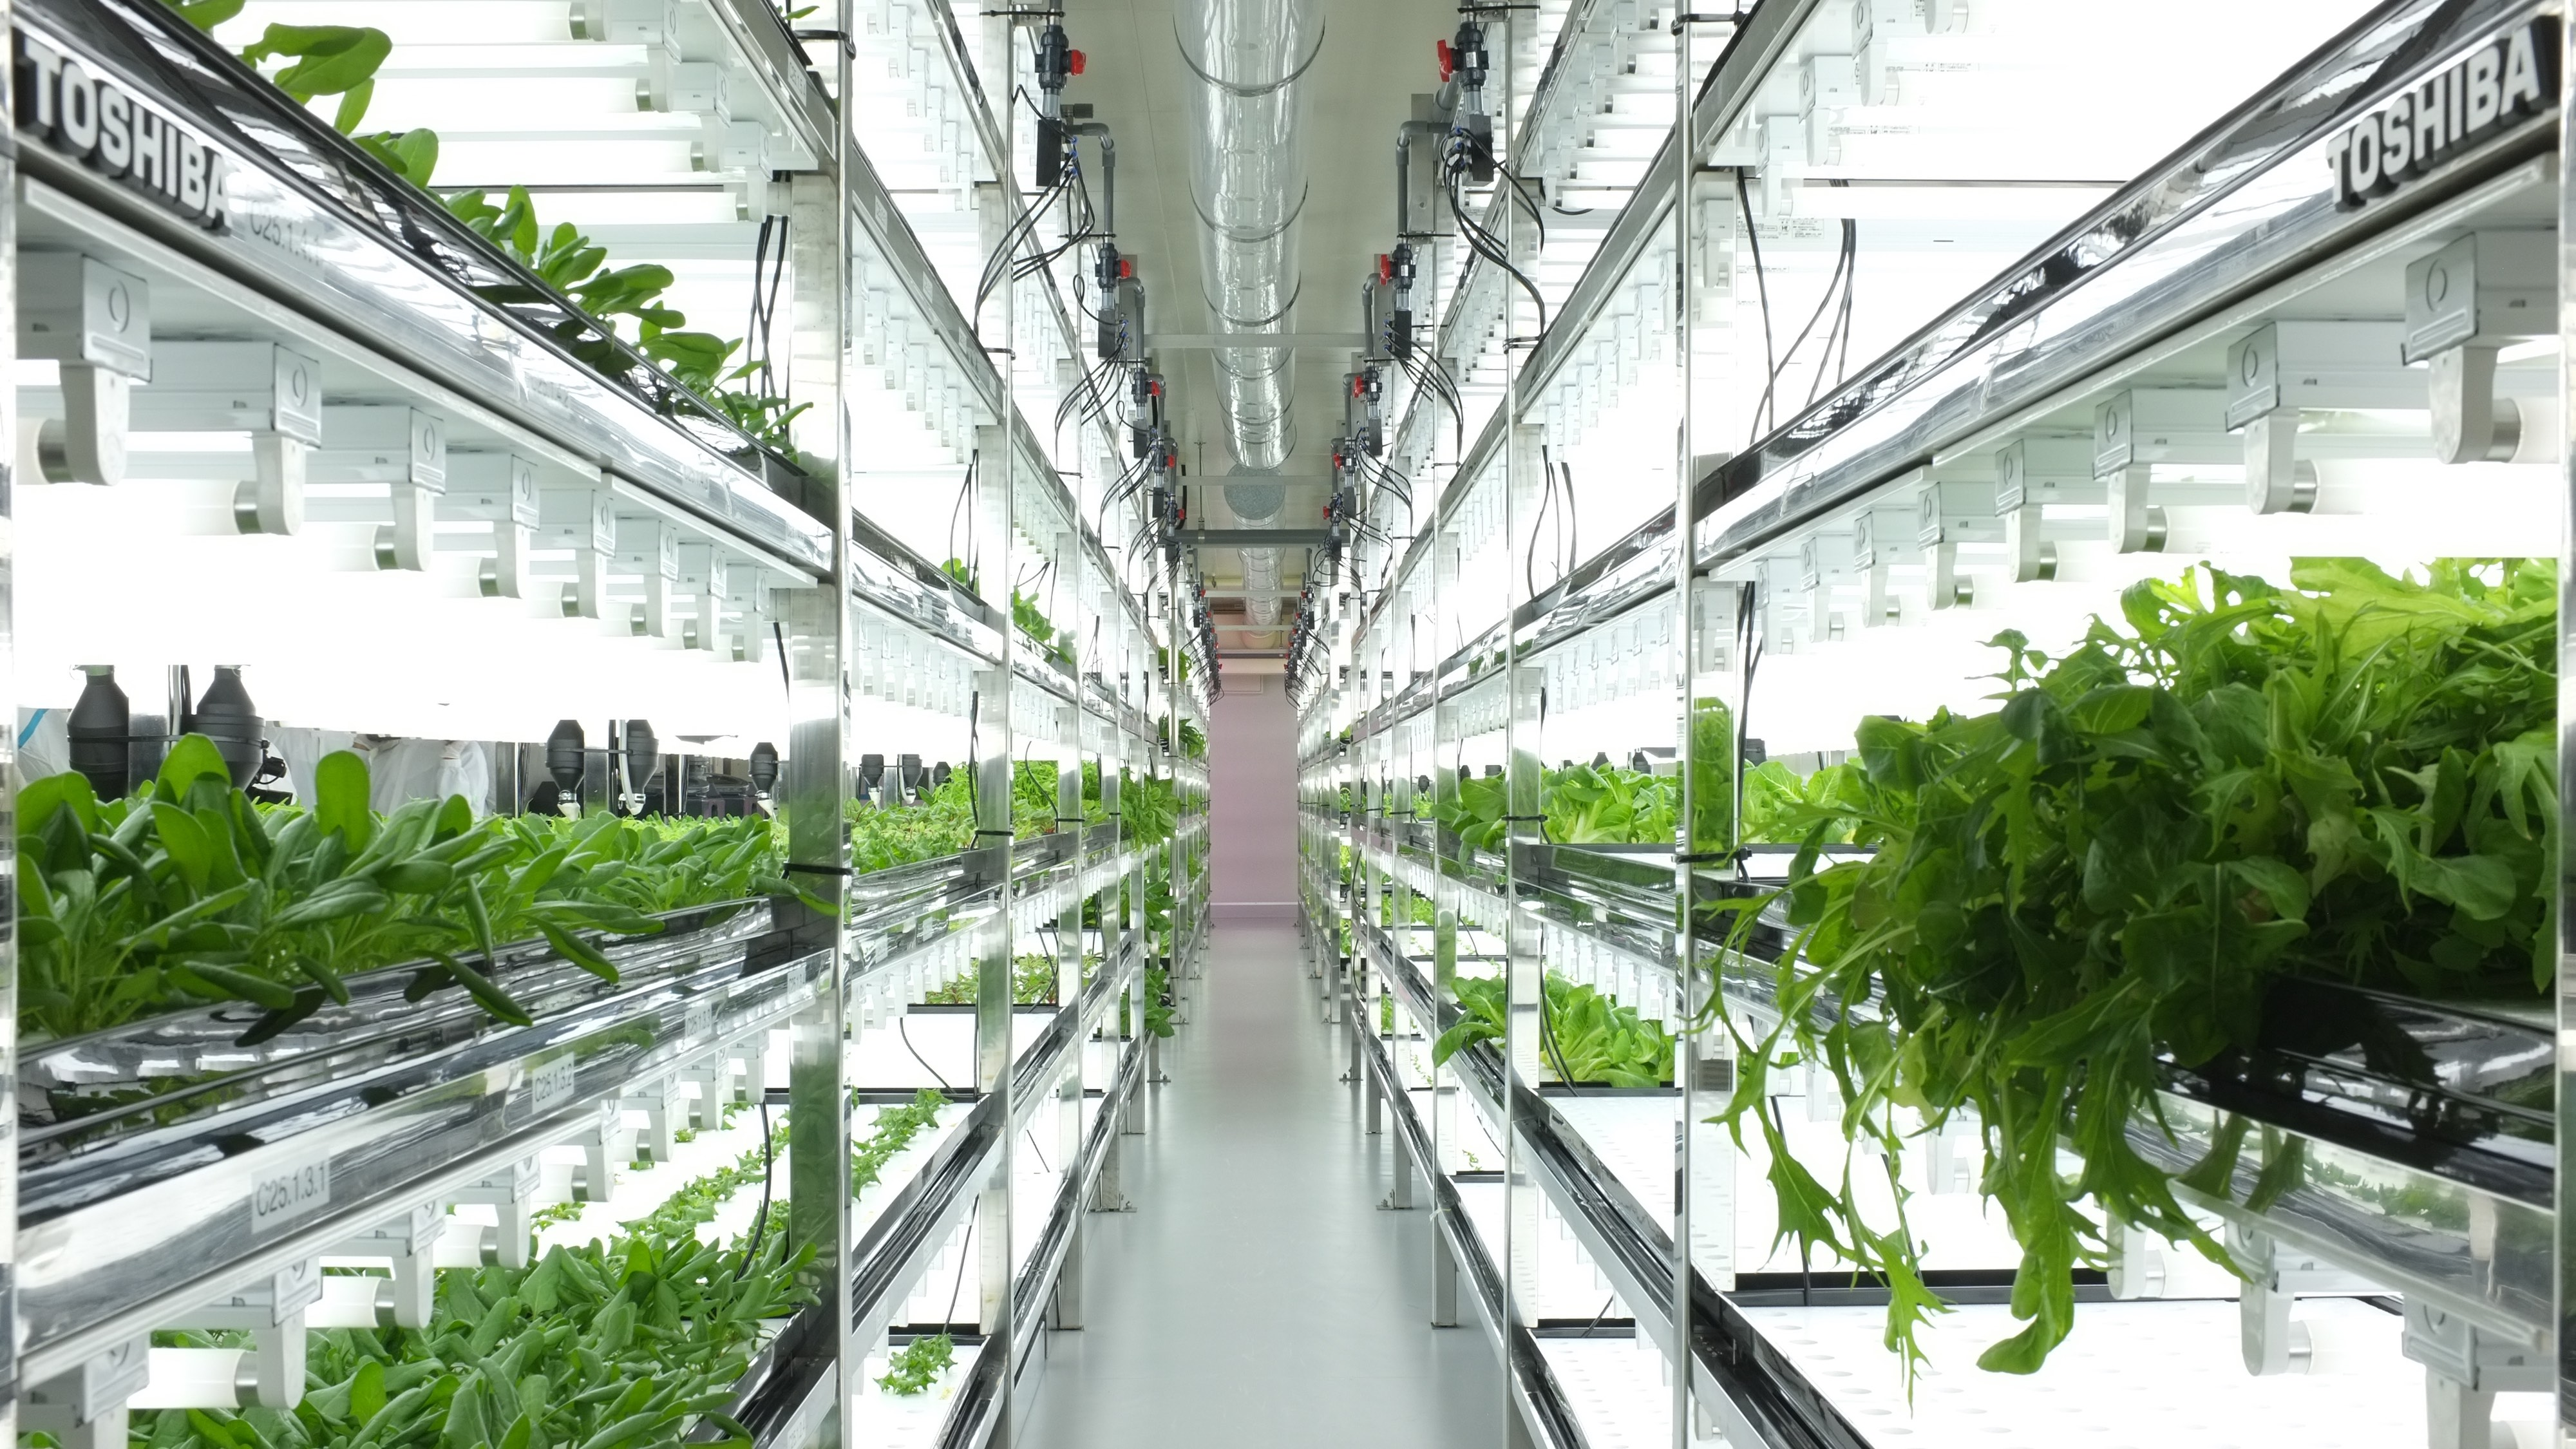 Toshiba indoor farm & Toshiba\u0027s high-tech grow rooms are churning out lettuce that never ...